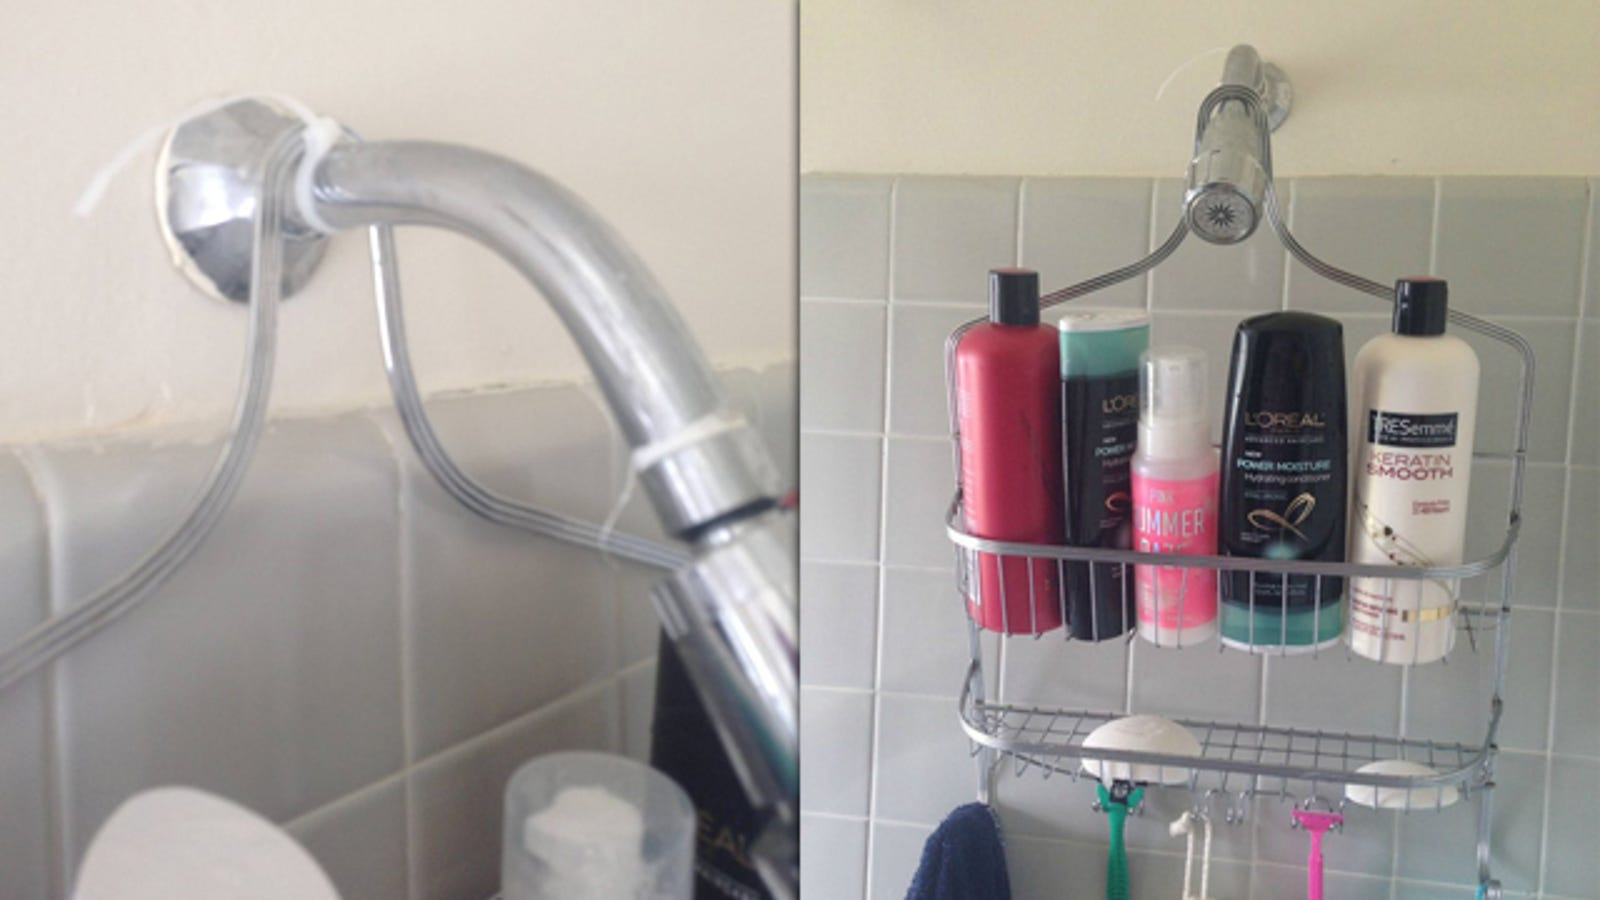 how to keep shower caddy from slipping down Use a Zip Tie to Hold a Shower Caddy in Place how to keep shower caddy from slipping down